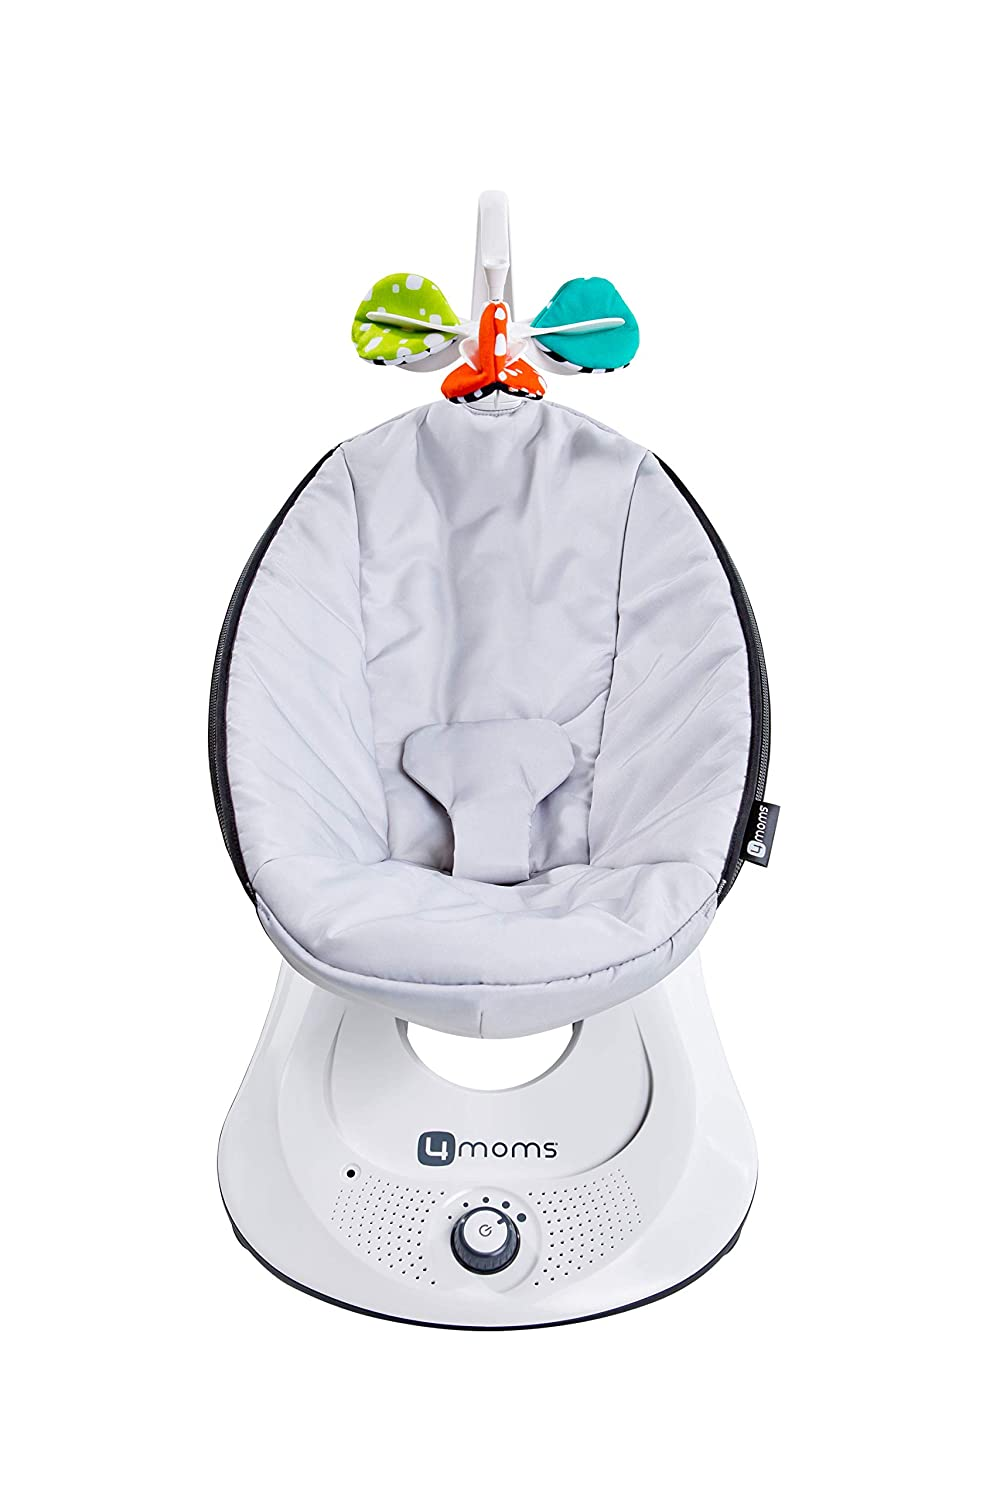 Amazon.com : 4moms rockaRoo Baby Swing, Compact Baby Rocker with Front to  Back Gliding Motion, Smooth, Nylon Fabric, Grey Classic : Baby